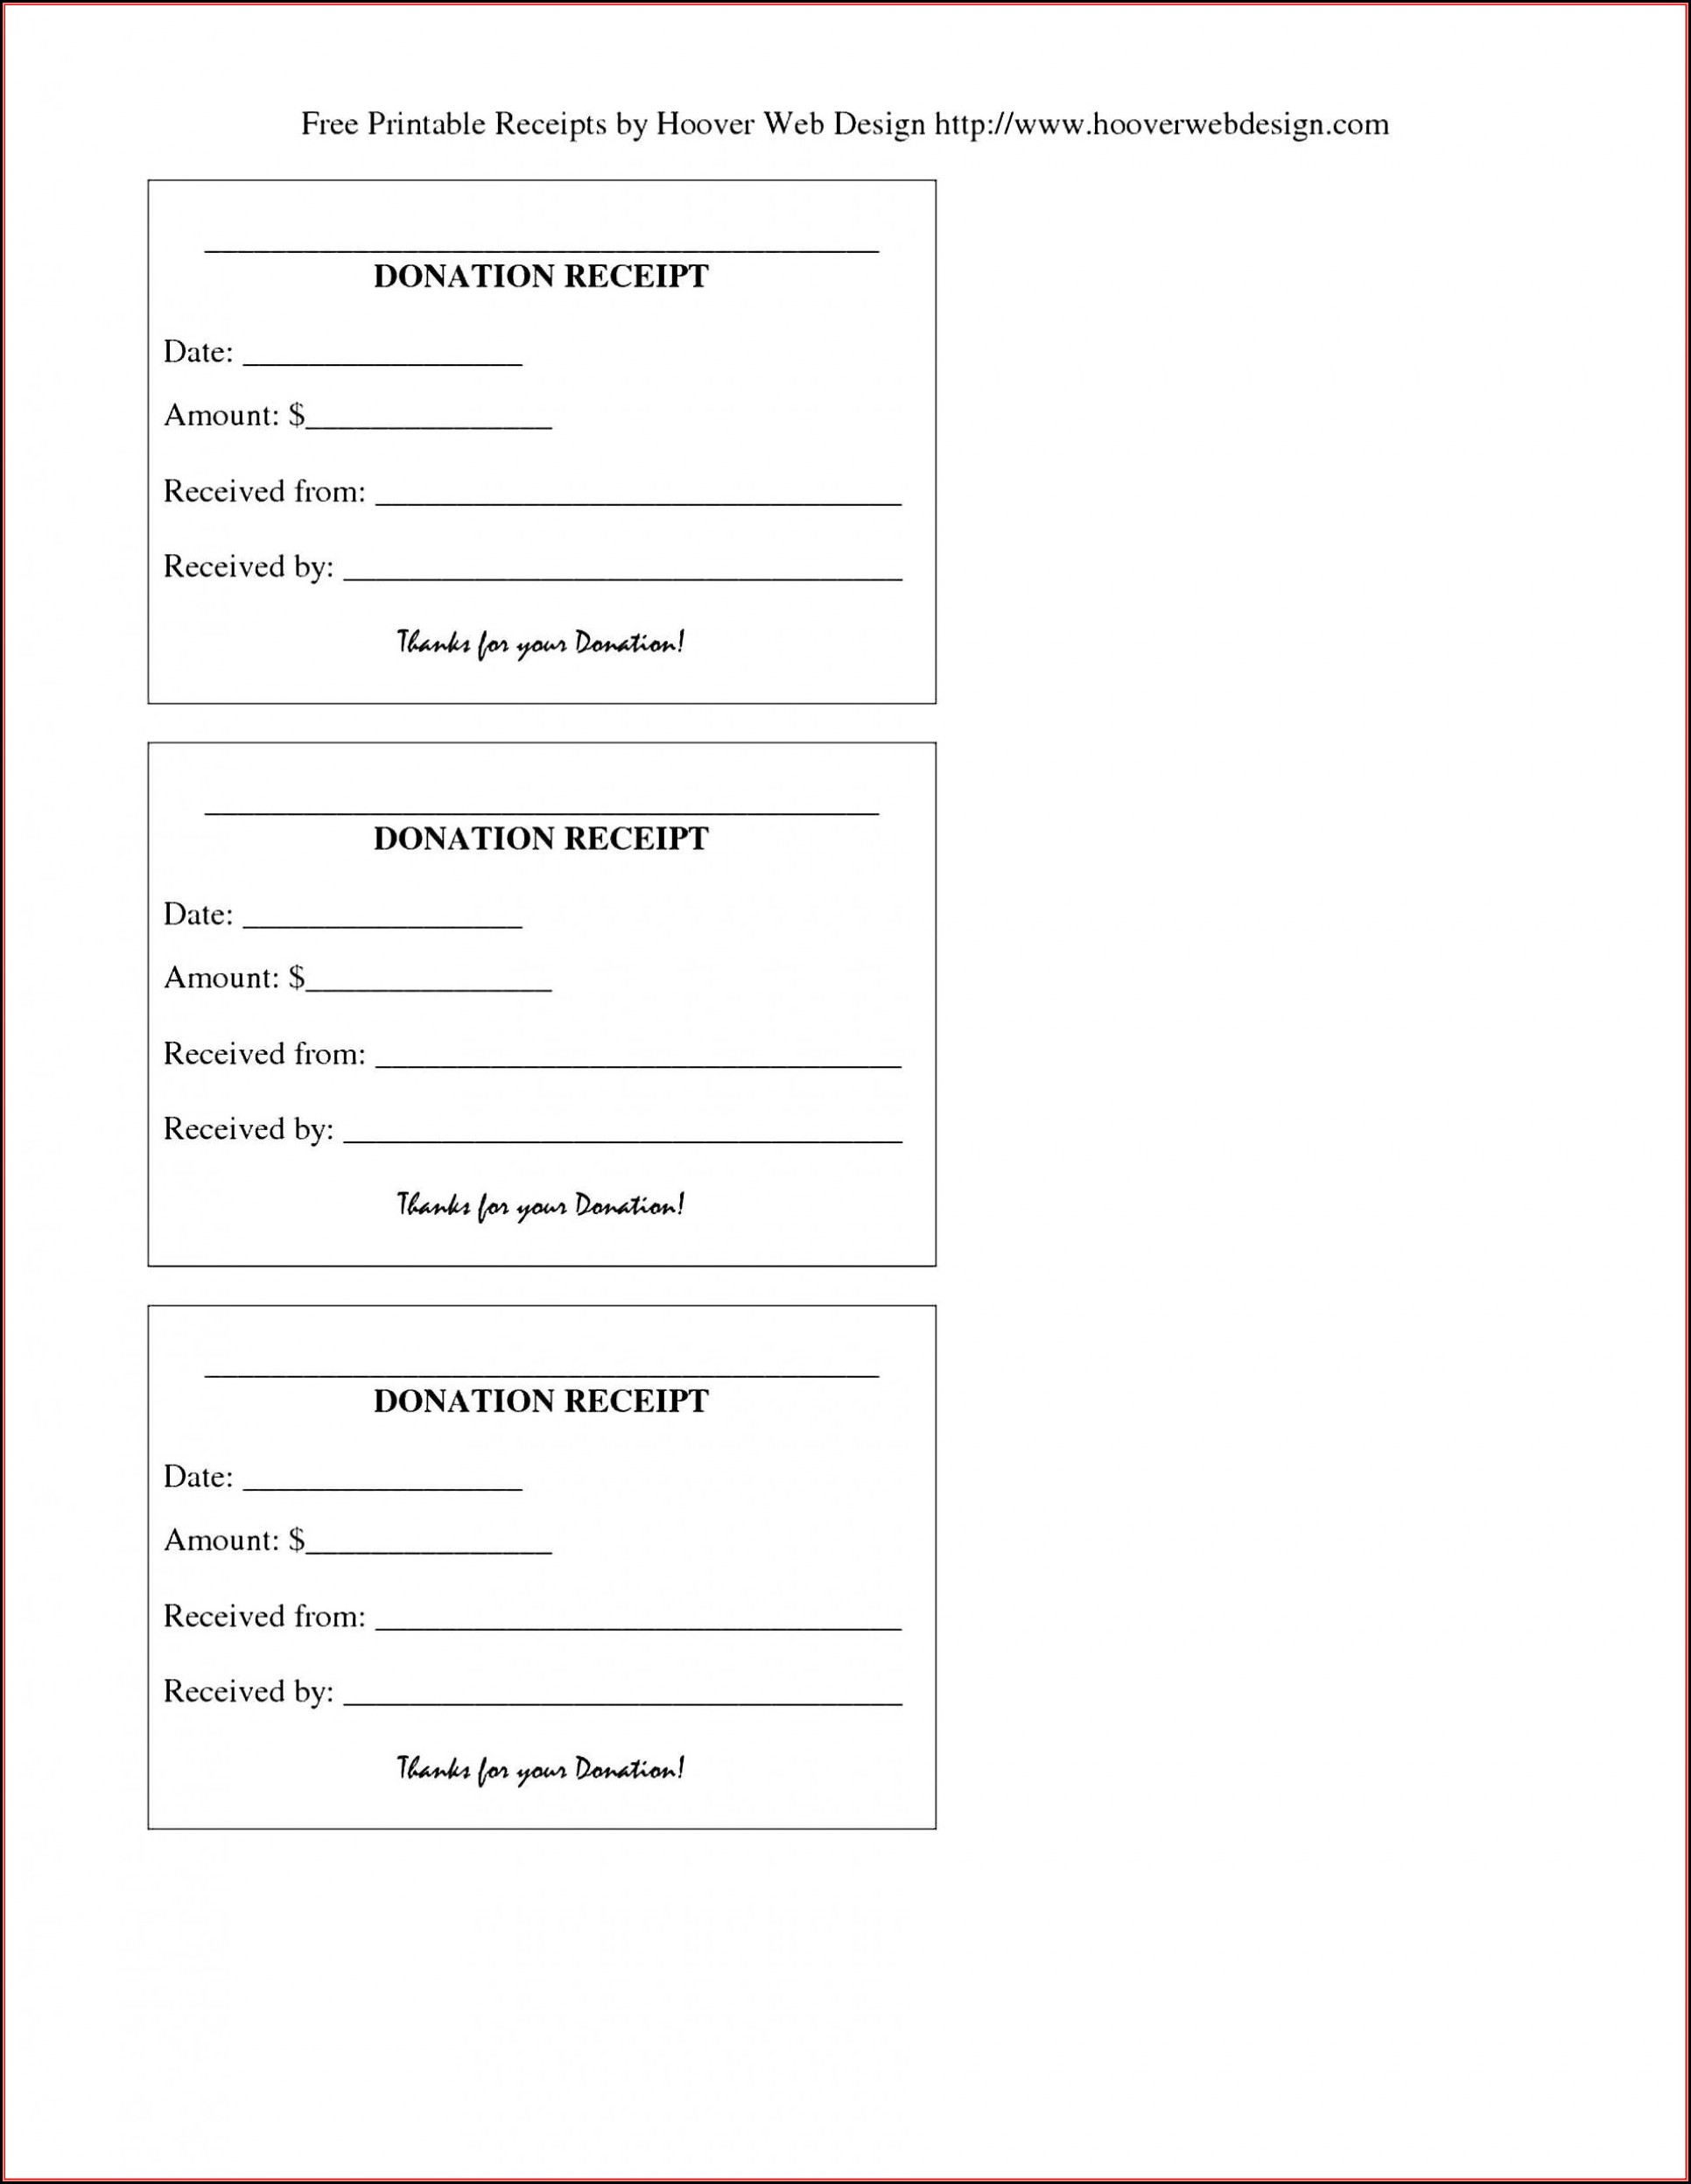 Free Printable Donation Receipt Template